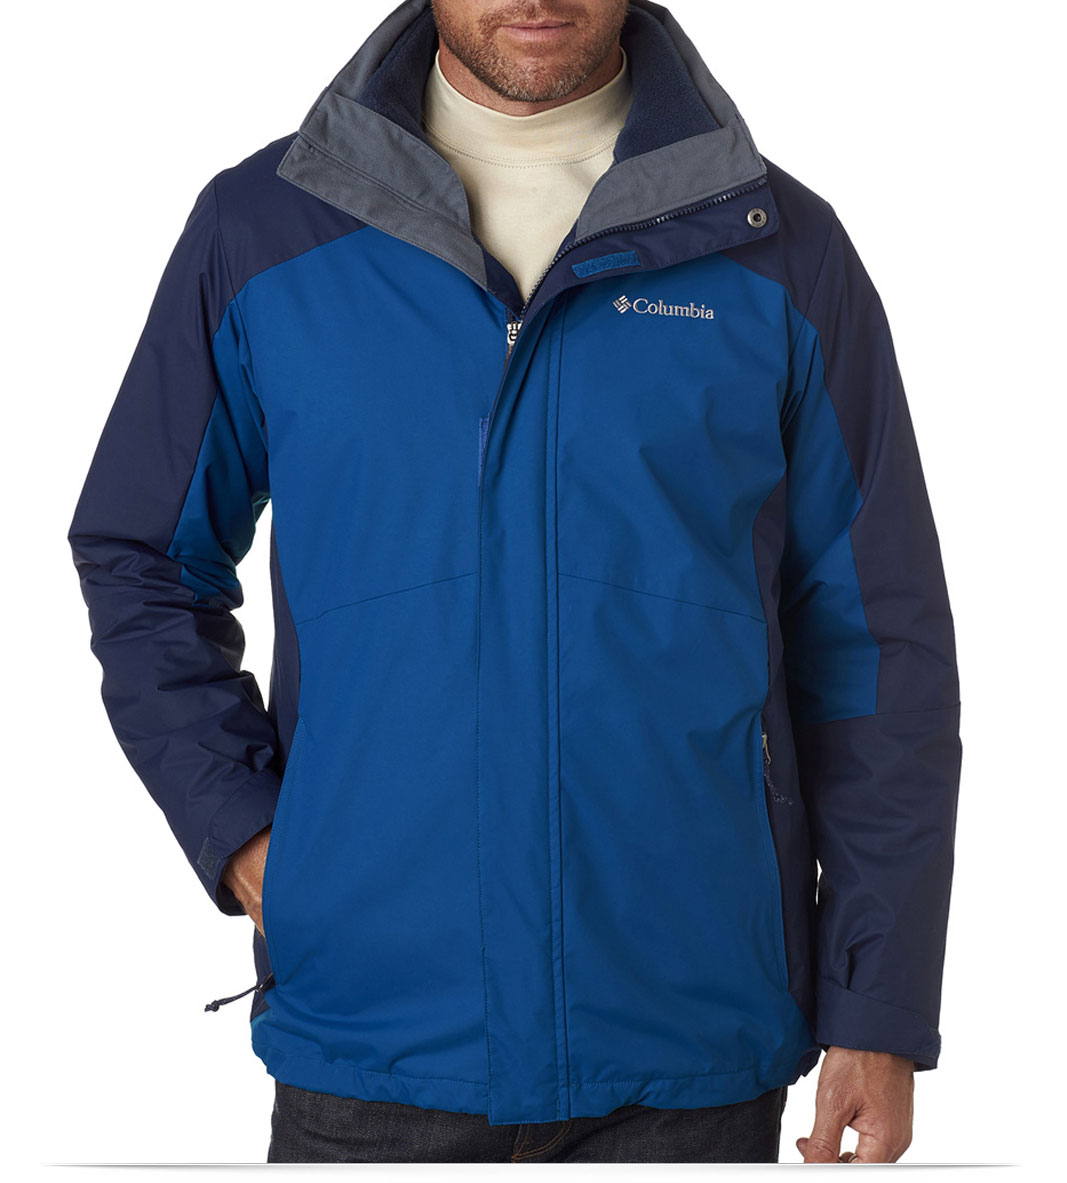 Personalized Columbia Men's Eager Air Interchange Jacket